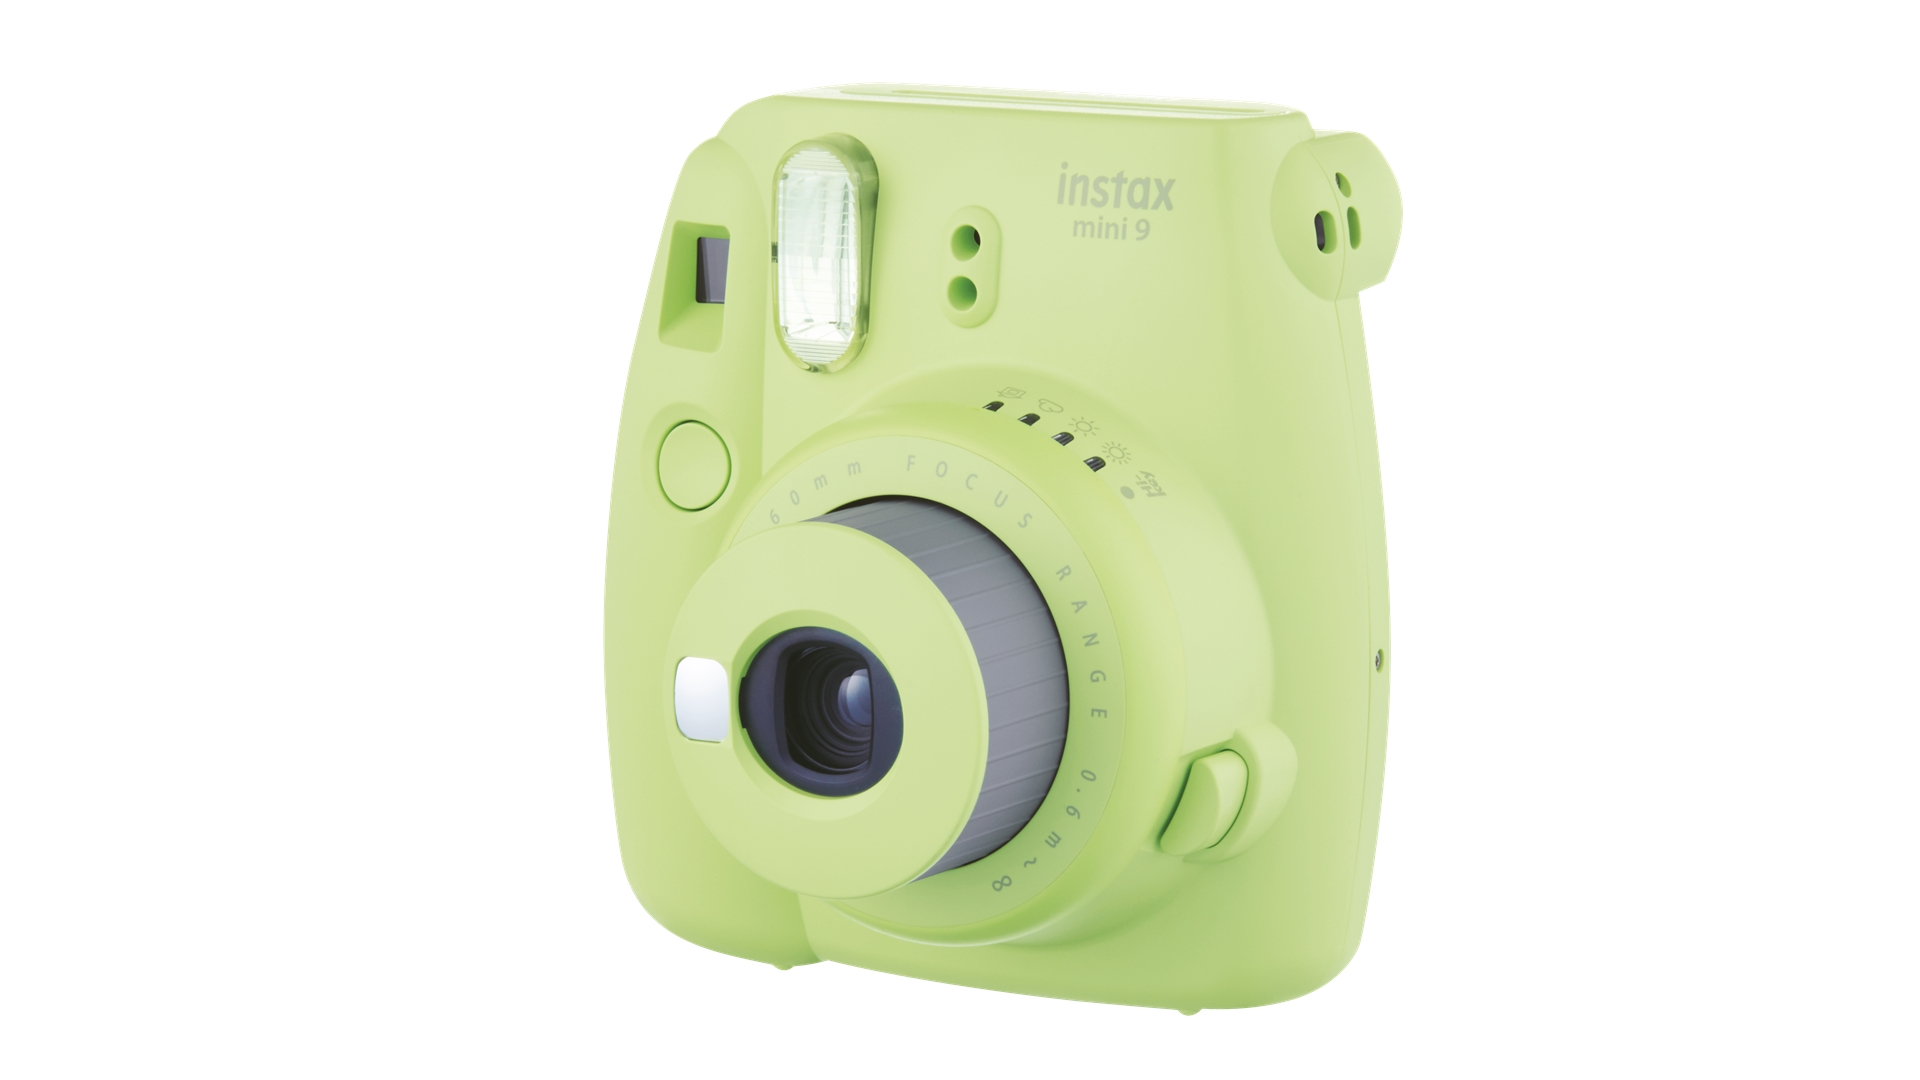 Fujifilm Instax Mini 9 prices